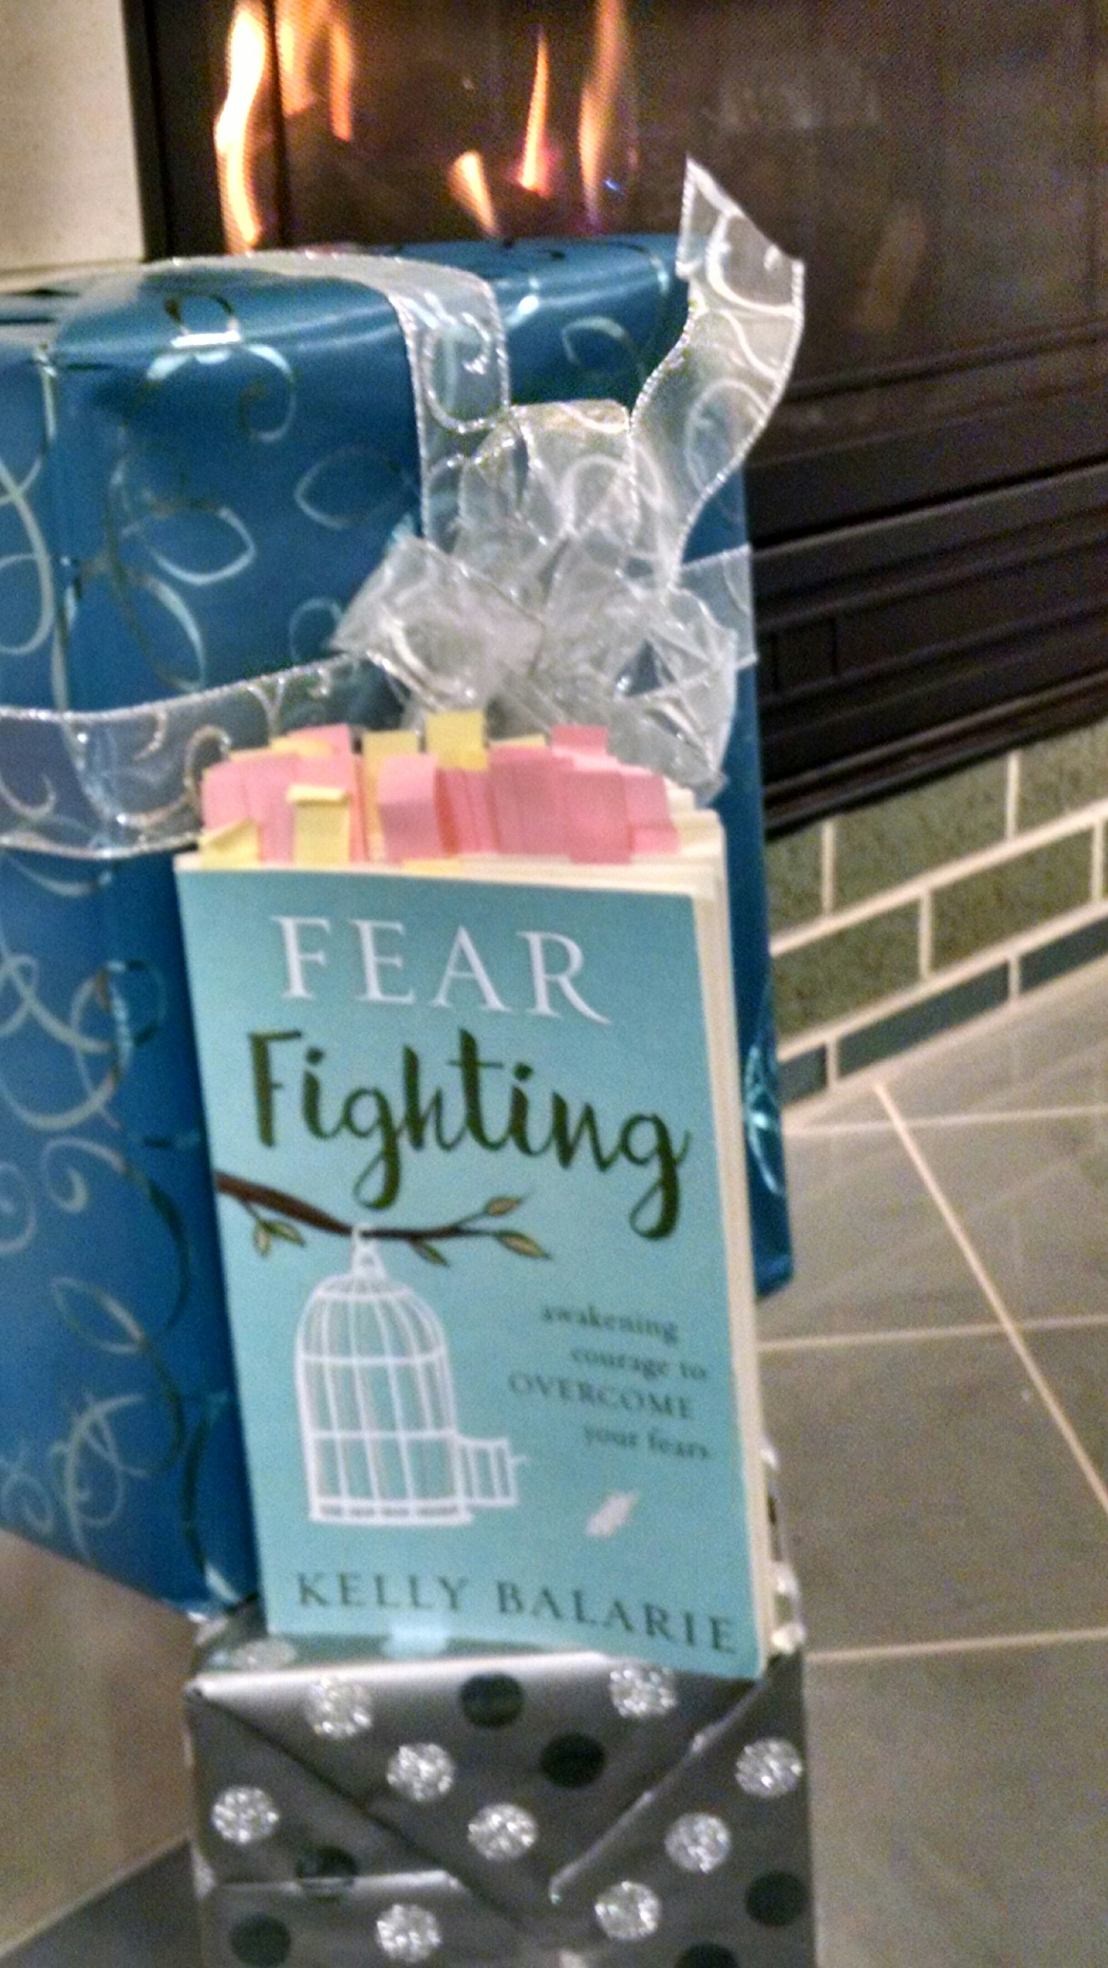 Fear Fighting by Kelly Balarie – AReview